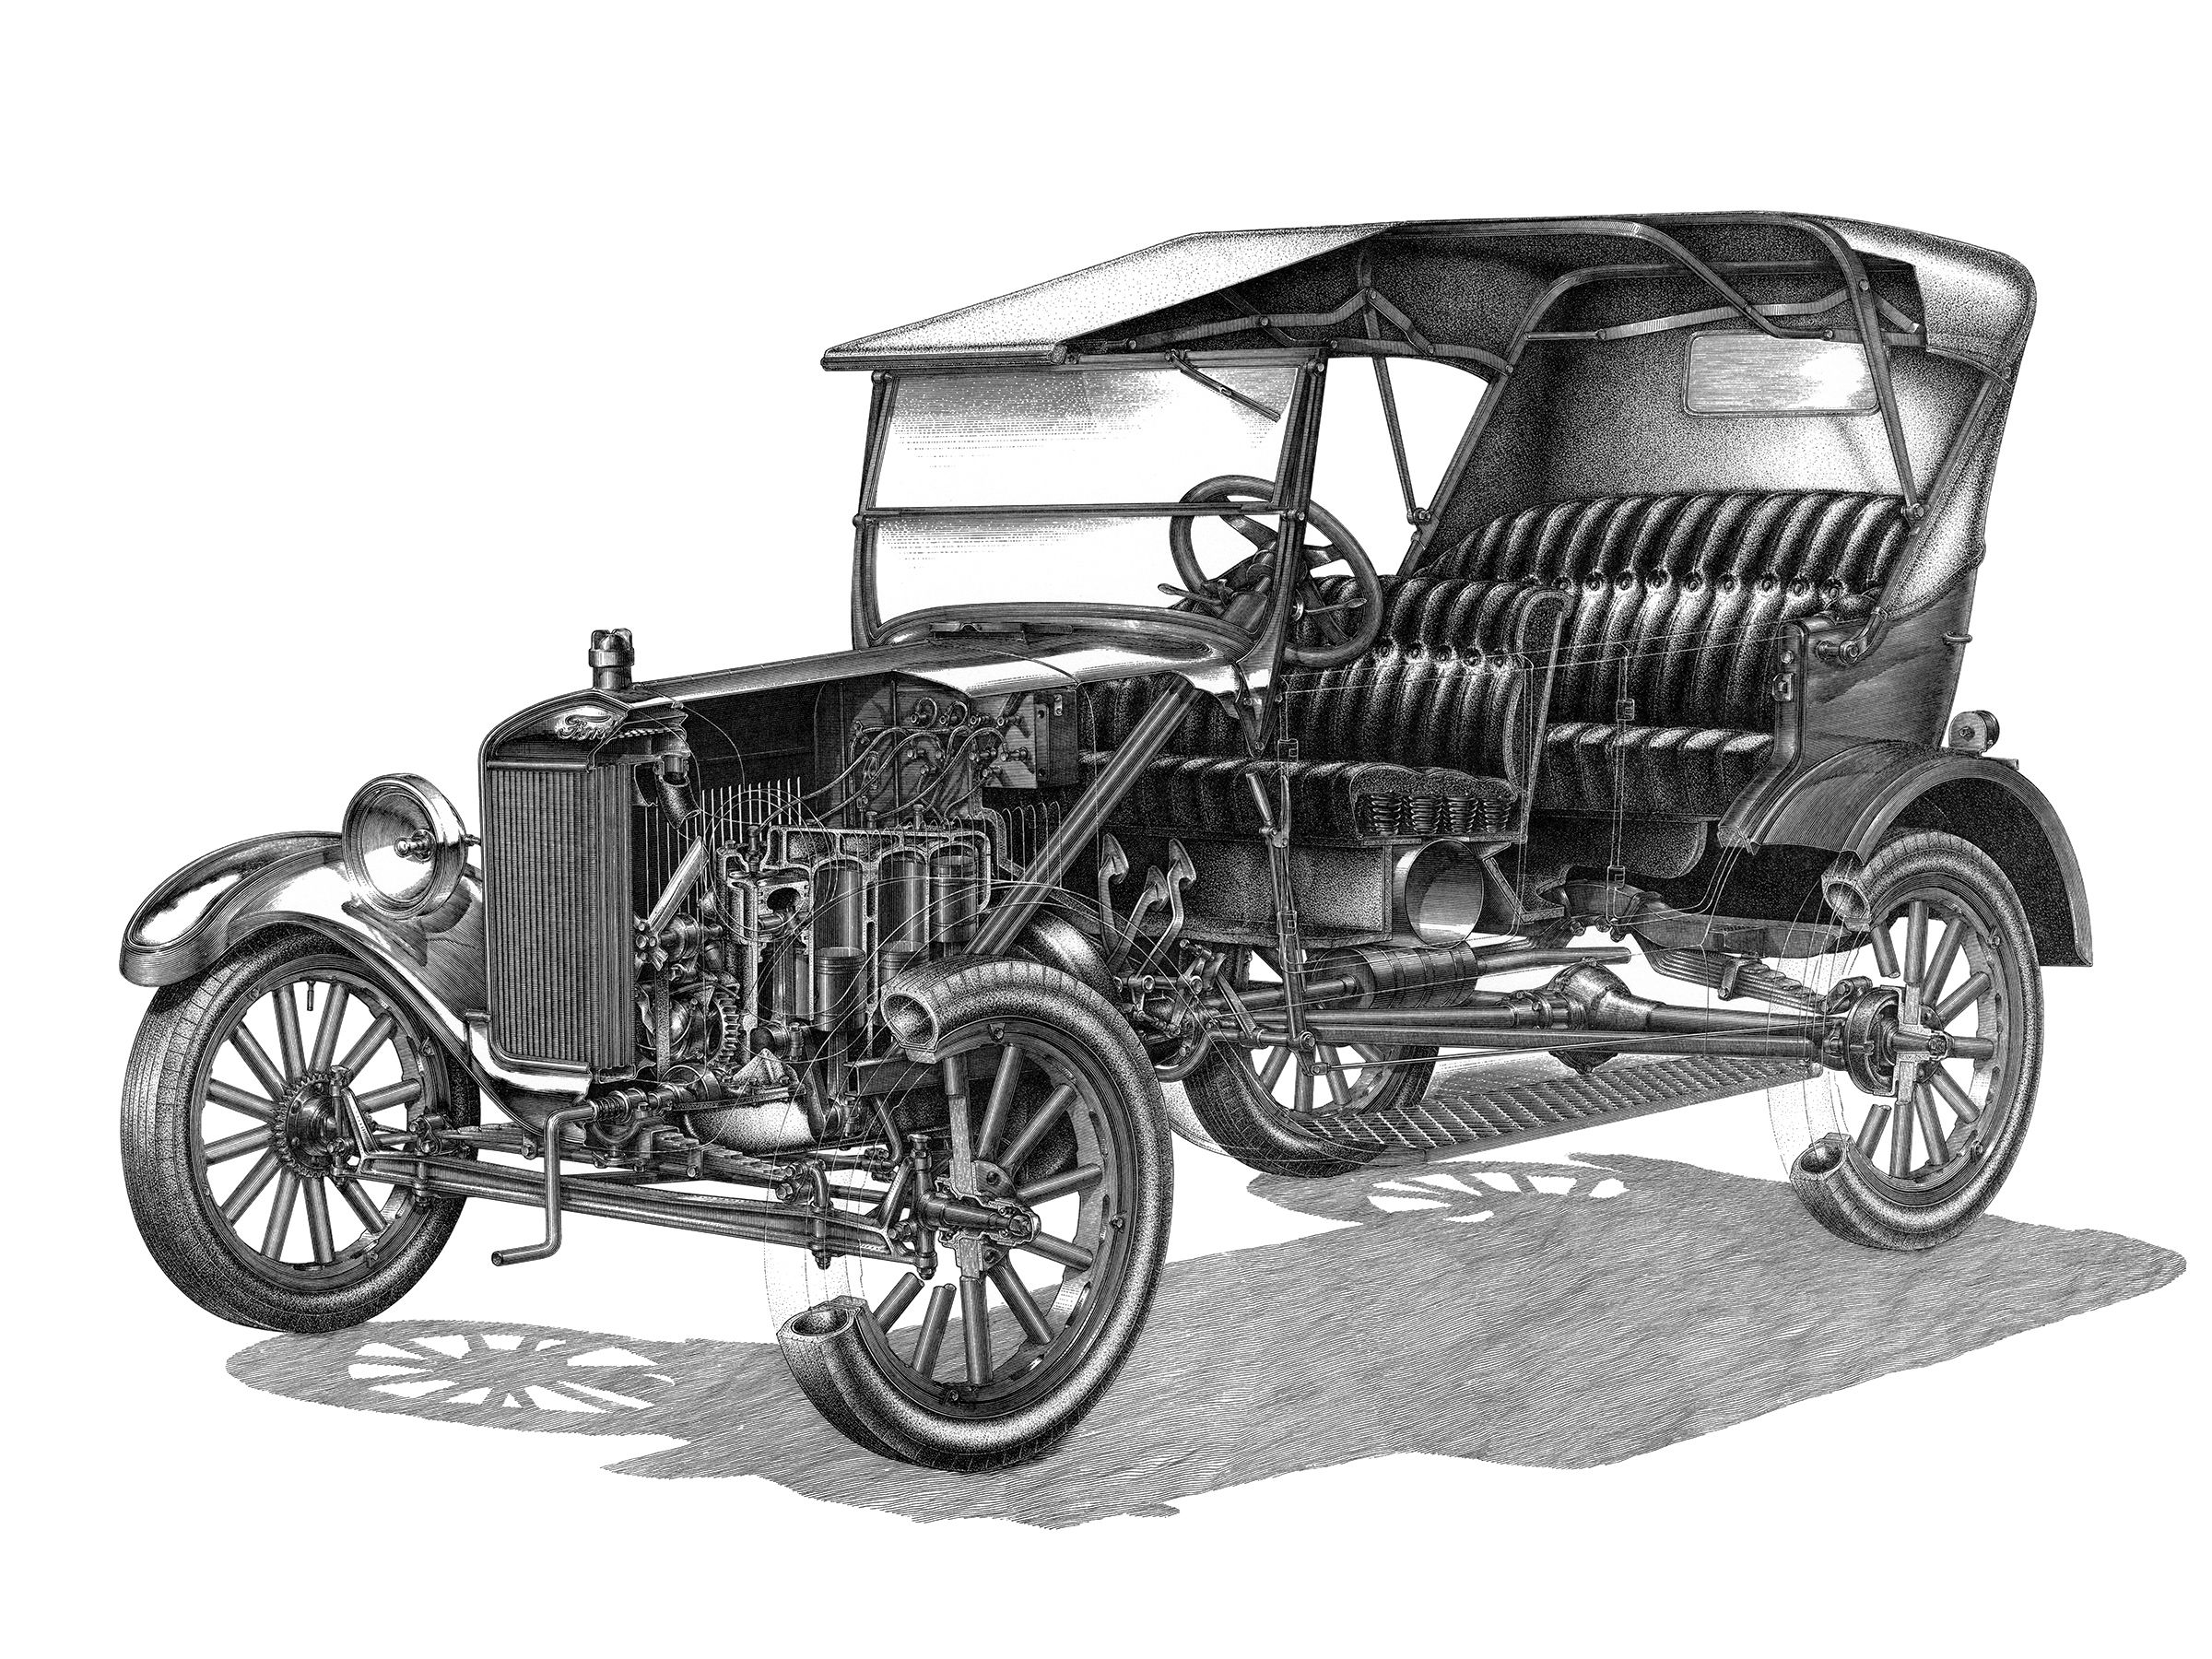 1926 Ford Model T Fordor Touring Illustrated By Yoshihiro Inomoto